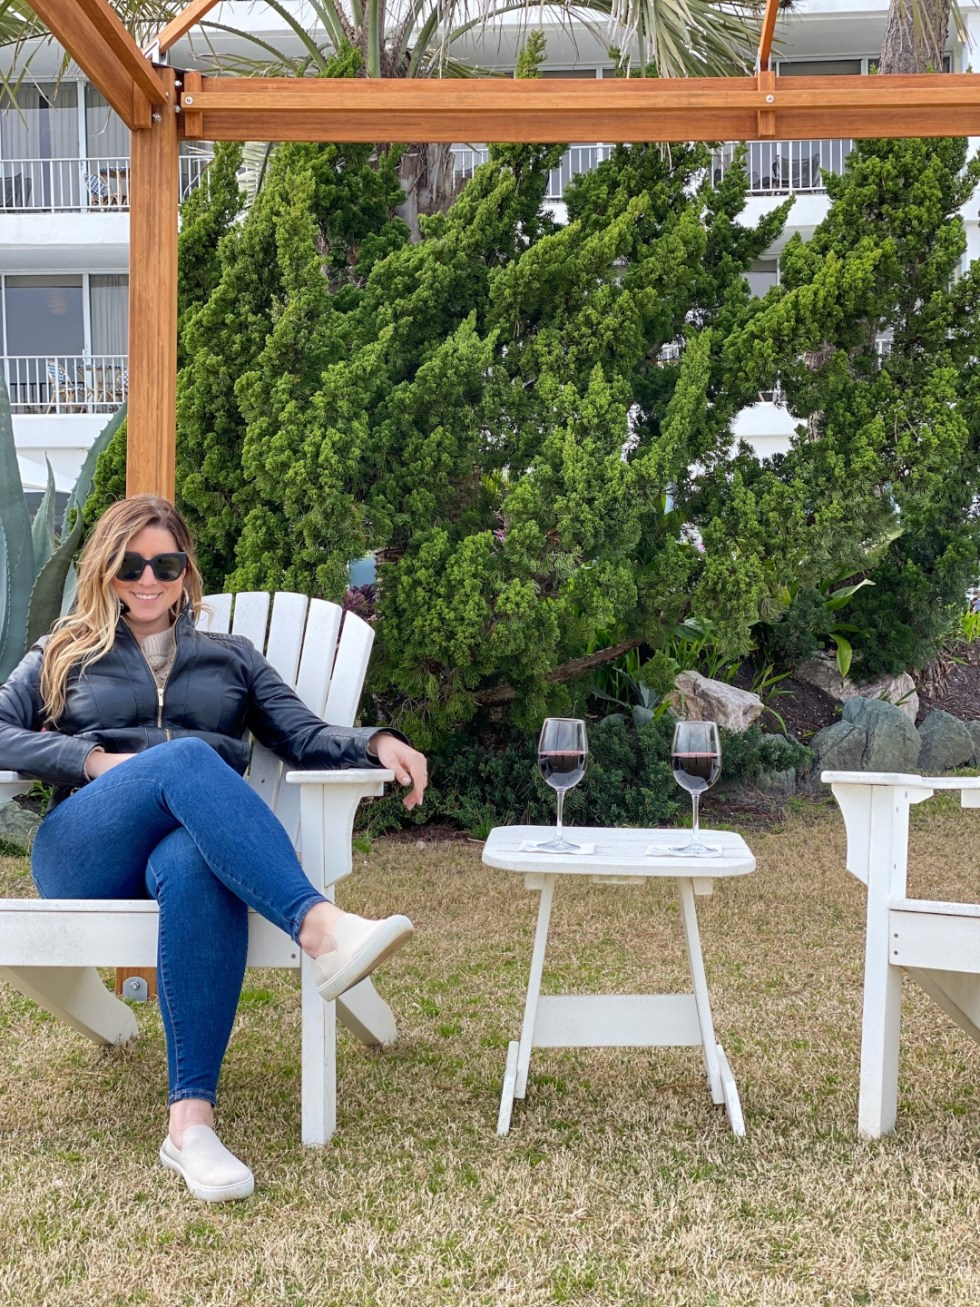 A Spring Weekend in Wilmington, NC: the Best Things to Do - I'm Fixin' To - @imfixintoblog |Weekend in Wilmington by popular NC travel blog, I'm Fixin' To: image of a woman sitting in a white wooden lounge chair next to a white end table holding two glasses of red wine.